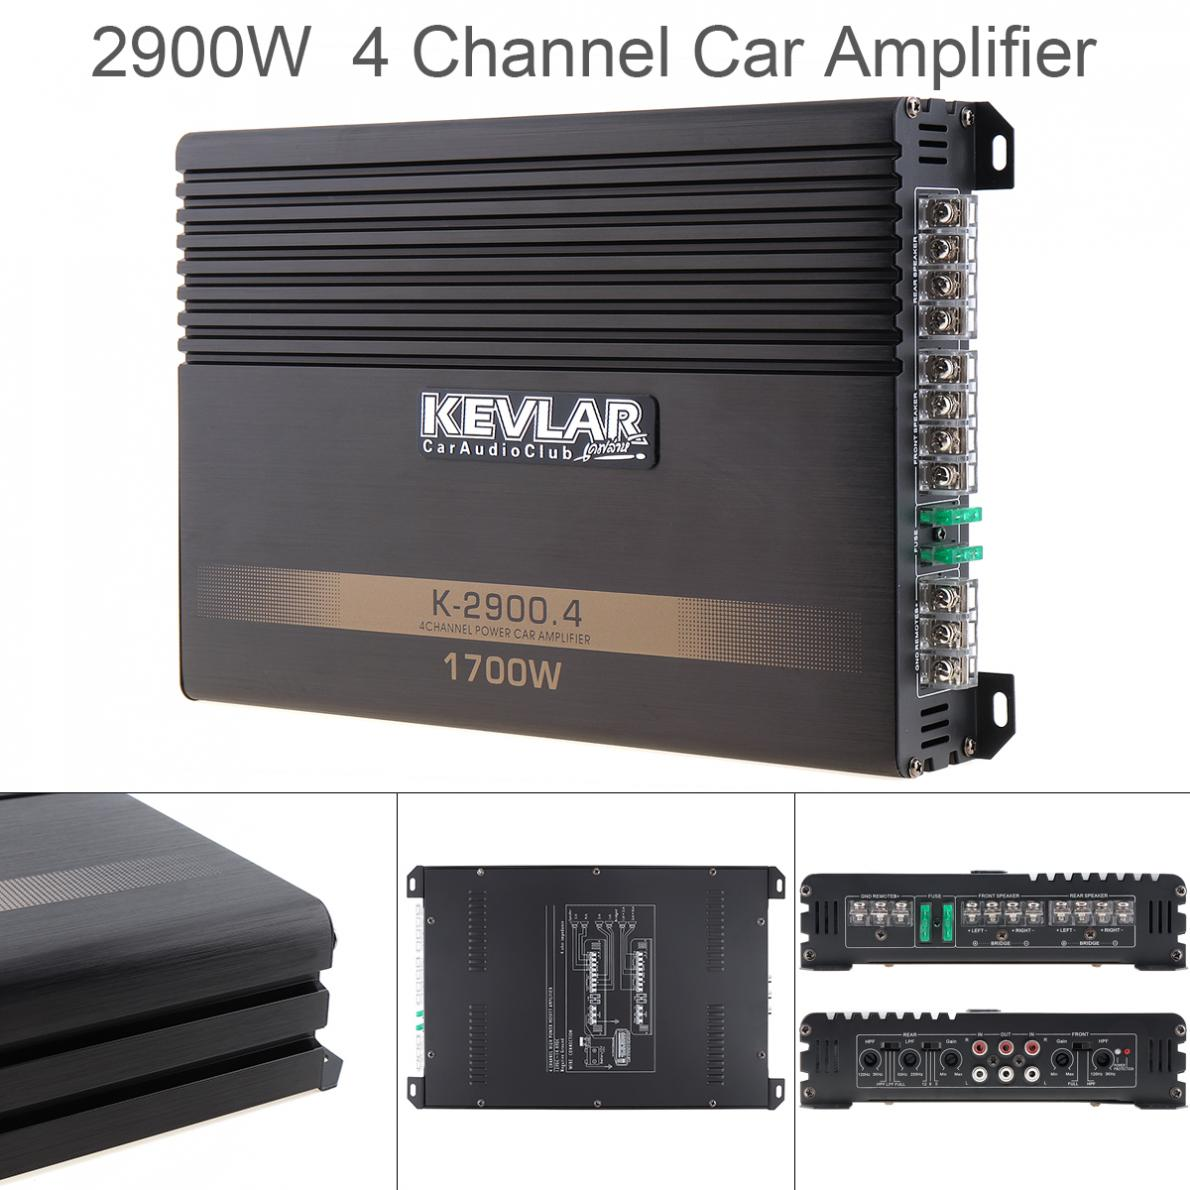 1700w Dc12v Class Ab Digital 4 Channel Aluminum Alloy High Power Amplifiers Car Stereo For Home